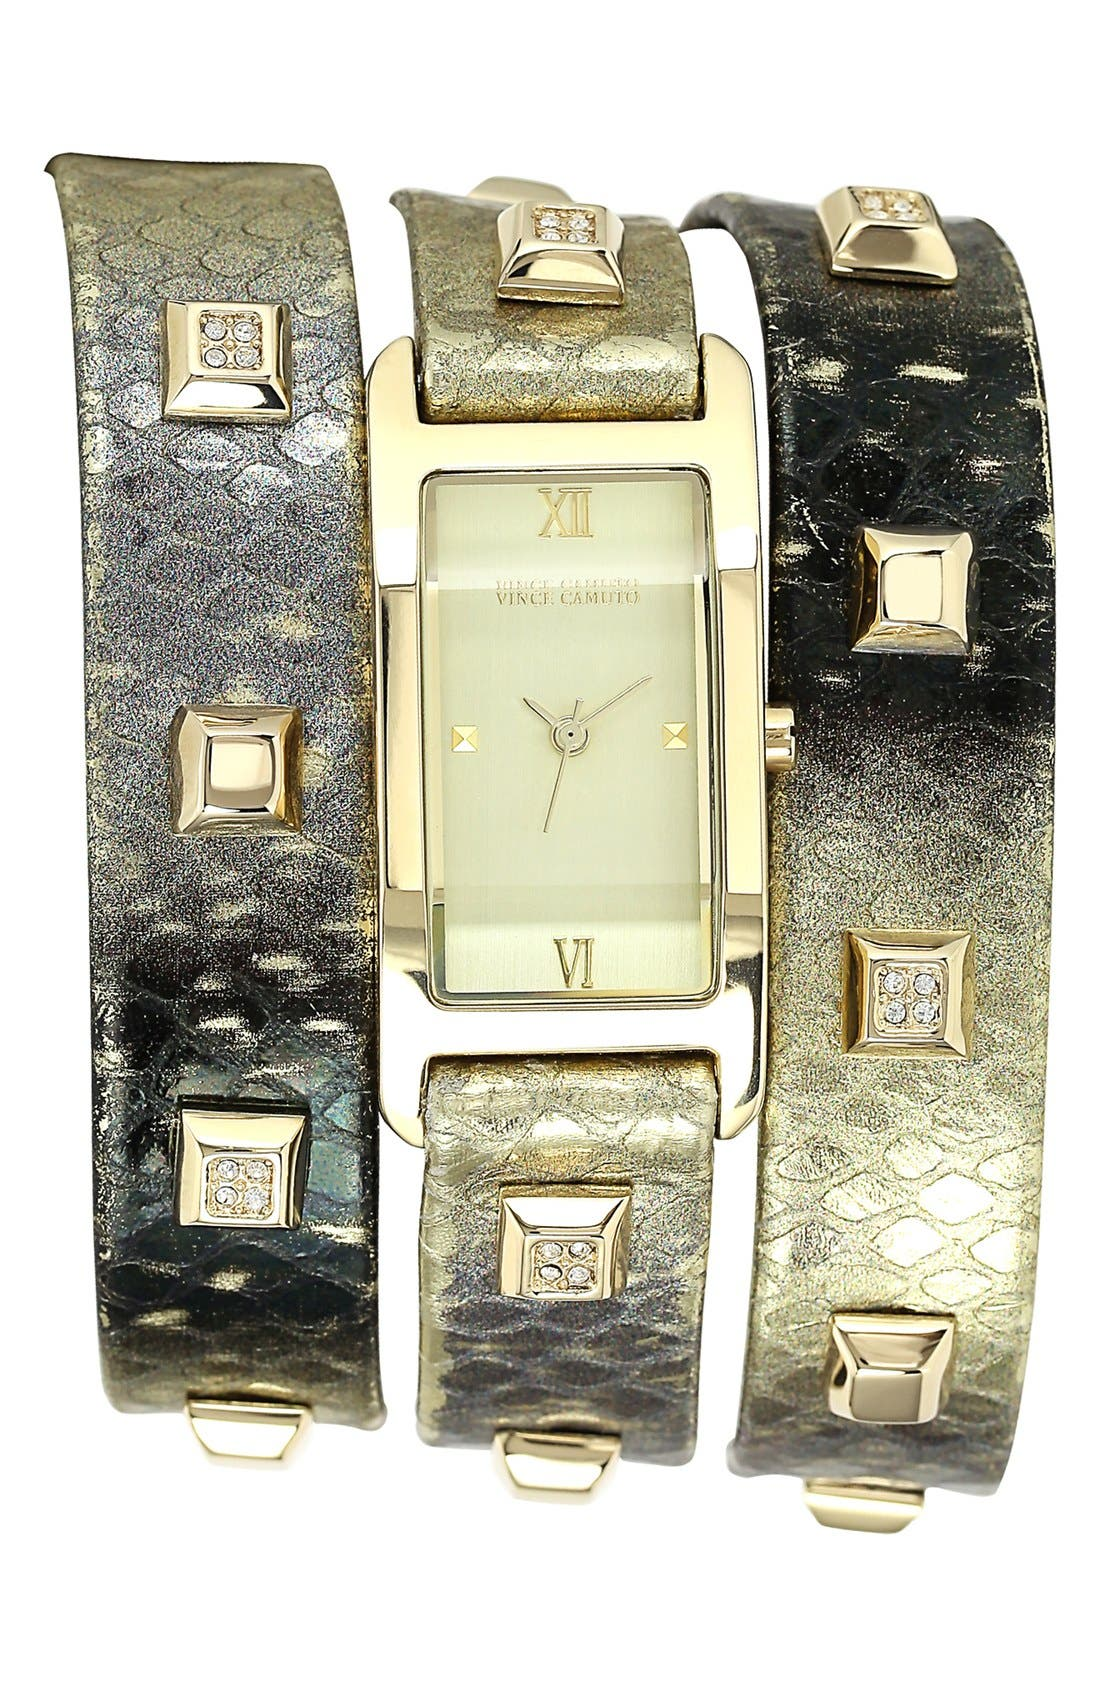 Main Image - Vince Camuto Triple Wrap Leather Strap Watch, 19mm x 40mm